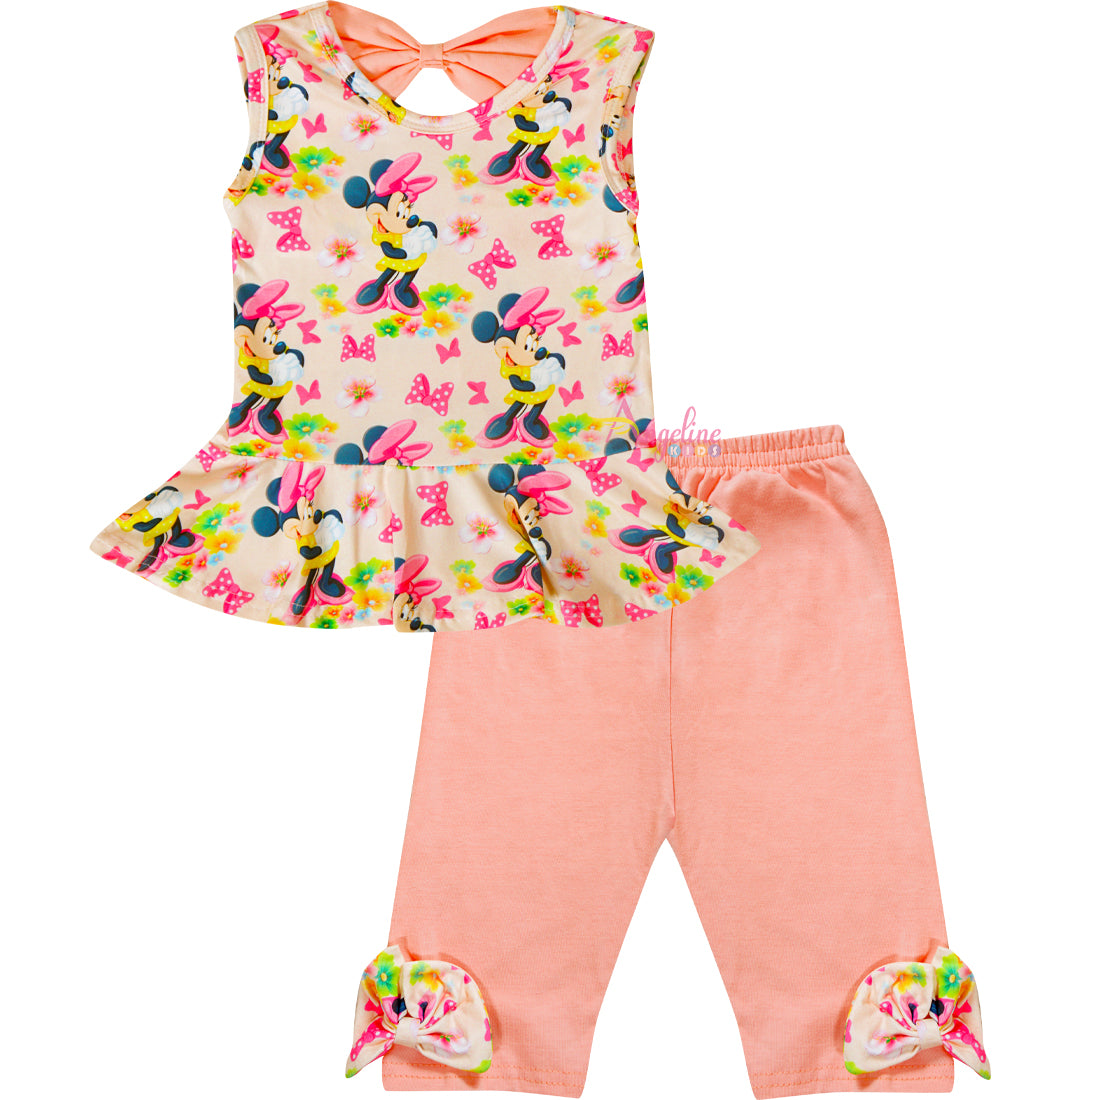 Baby Toddler Little Girls Spring Easter Minnie Mouse Peplum Top Capri Pants Set - Coral